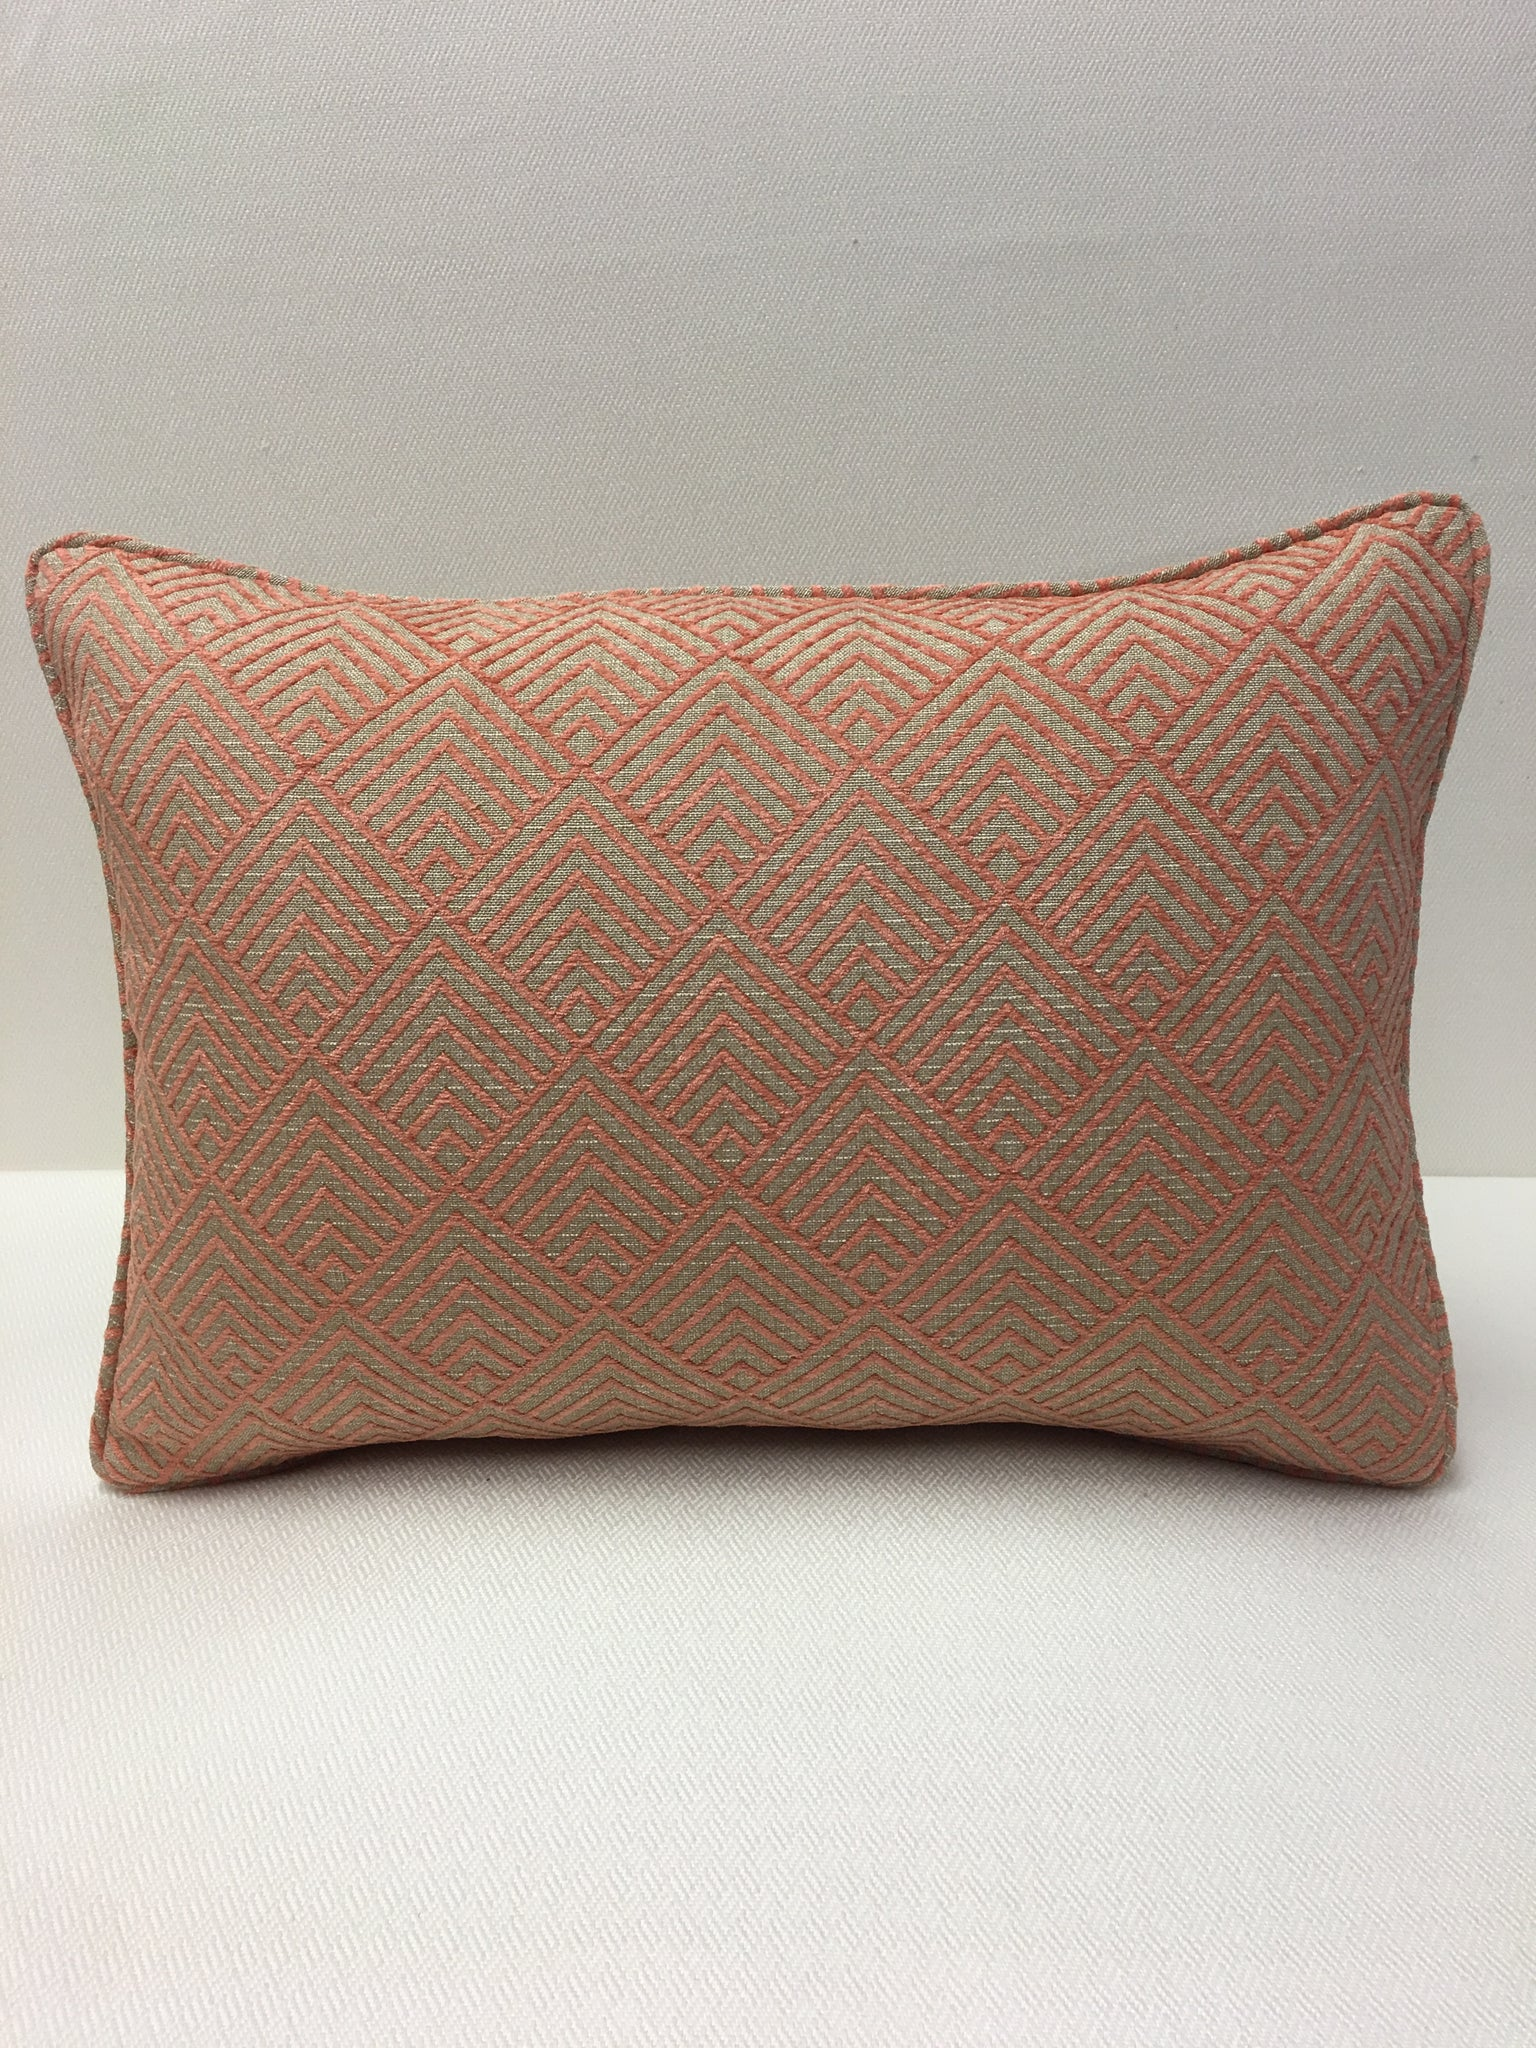 Brentano  Peach/Rose, Beige geometric Design Pillow Cover, Eurosham or Lumbar Pillow Accent Pillow, Throw Pillow